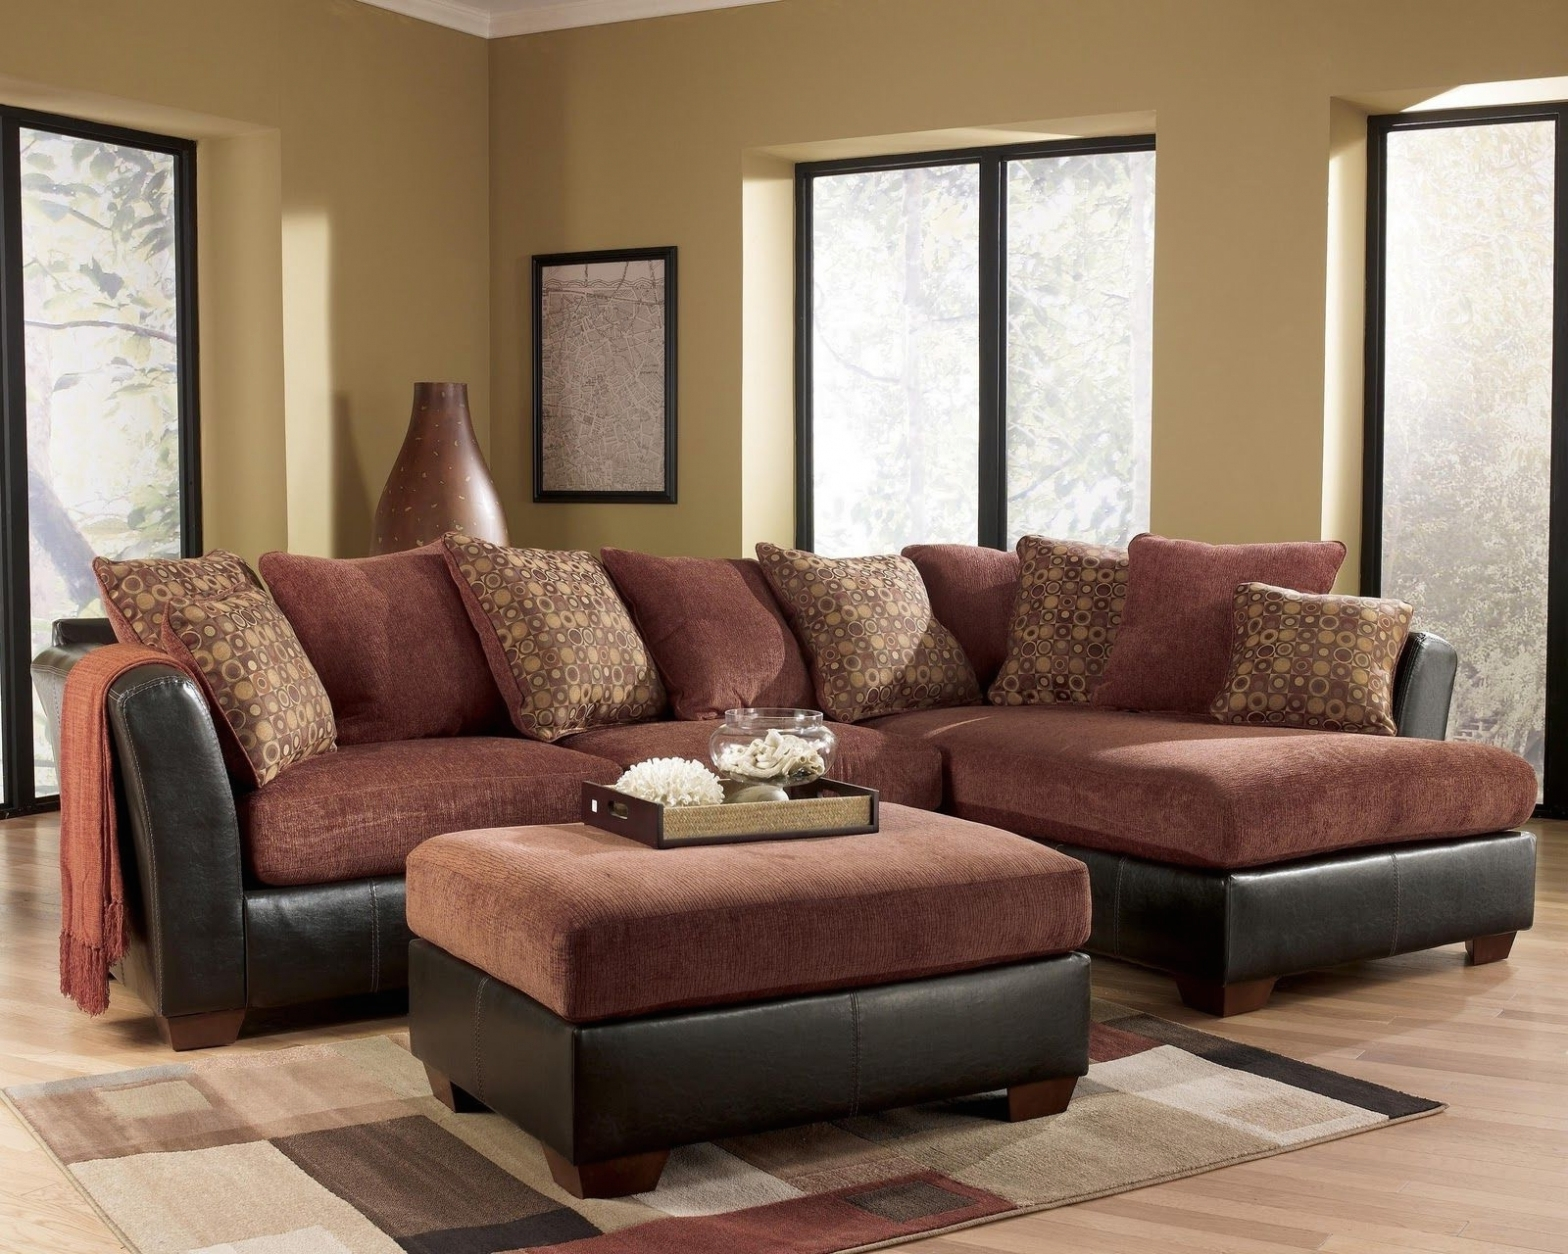 Most Popular Sofa: Furniture : Amazing Jc Penneys Furniture Beautiful Jcpenney Throughout Jcpenney Sectional Sofas (View 12 of 20)